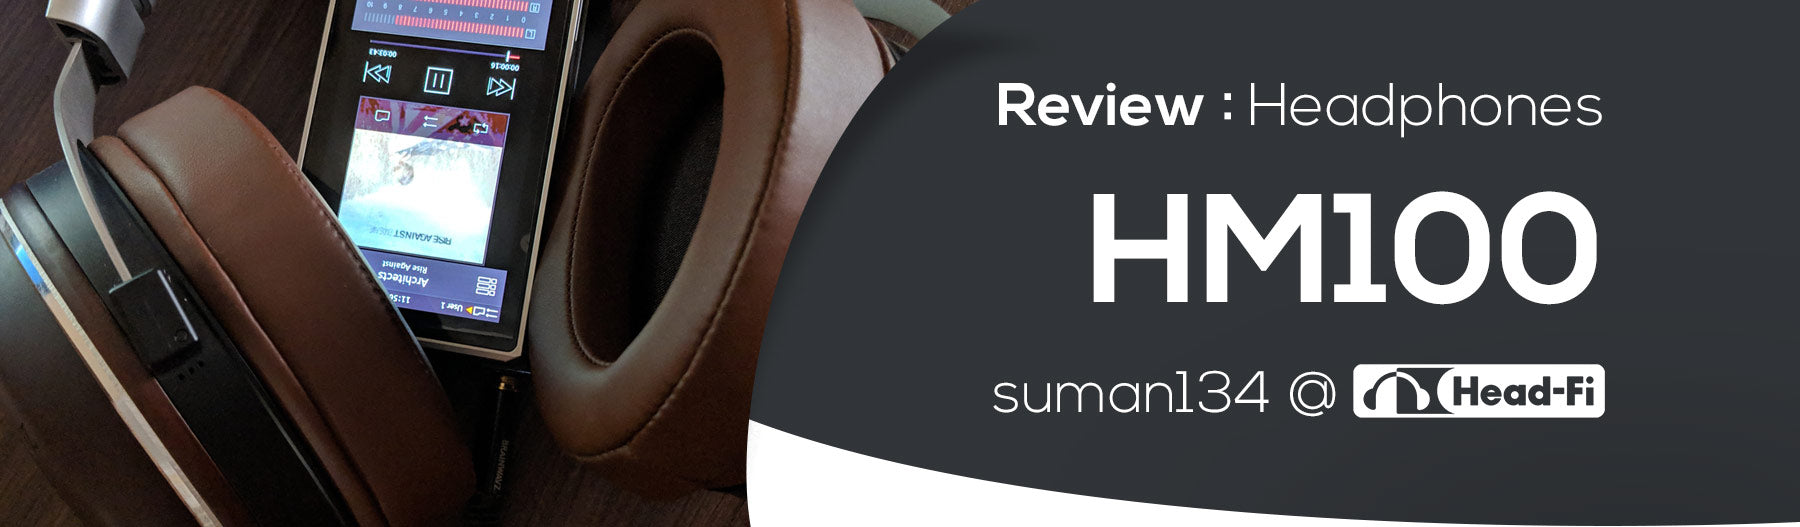 HM100  - Solid Review for our Wooden Headphones